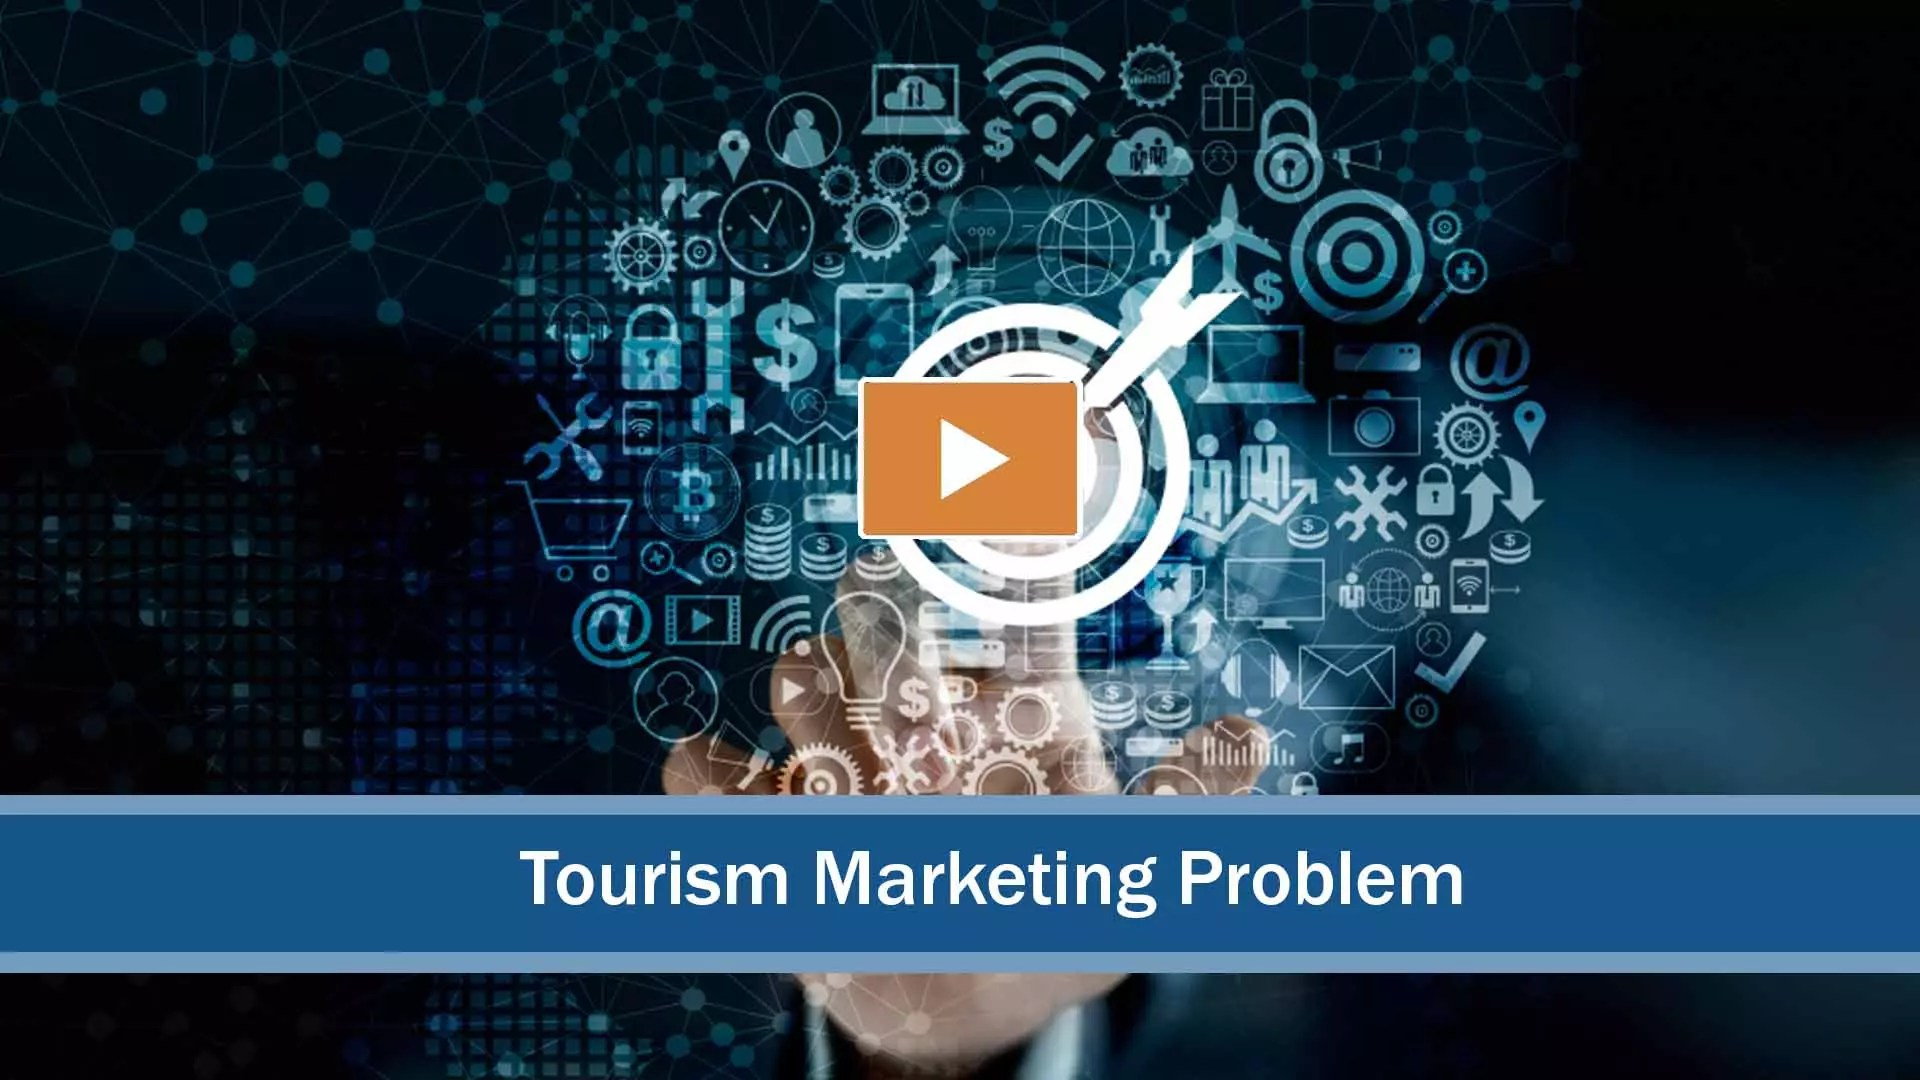 tourism target market - explaining why it isn't this.